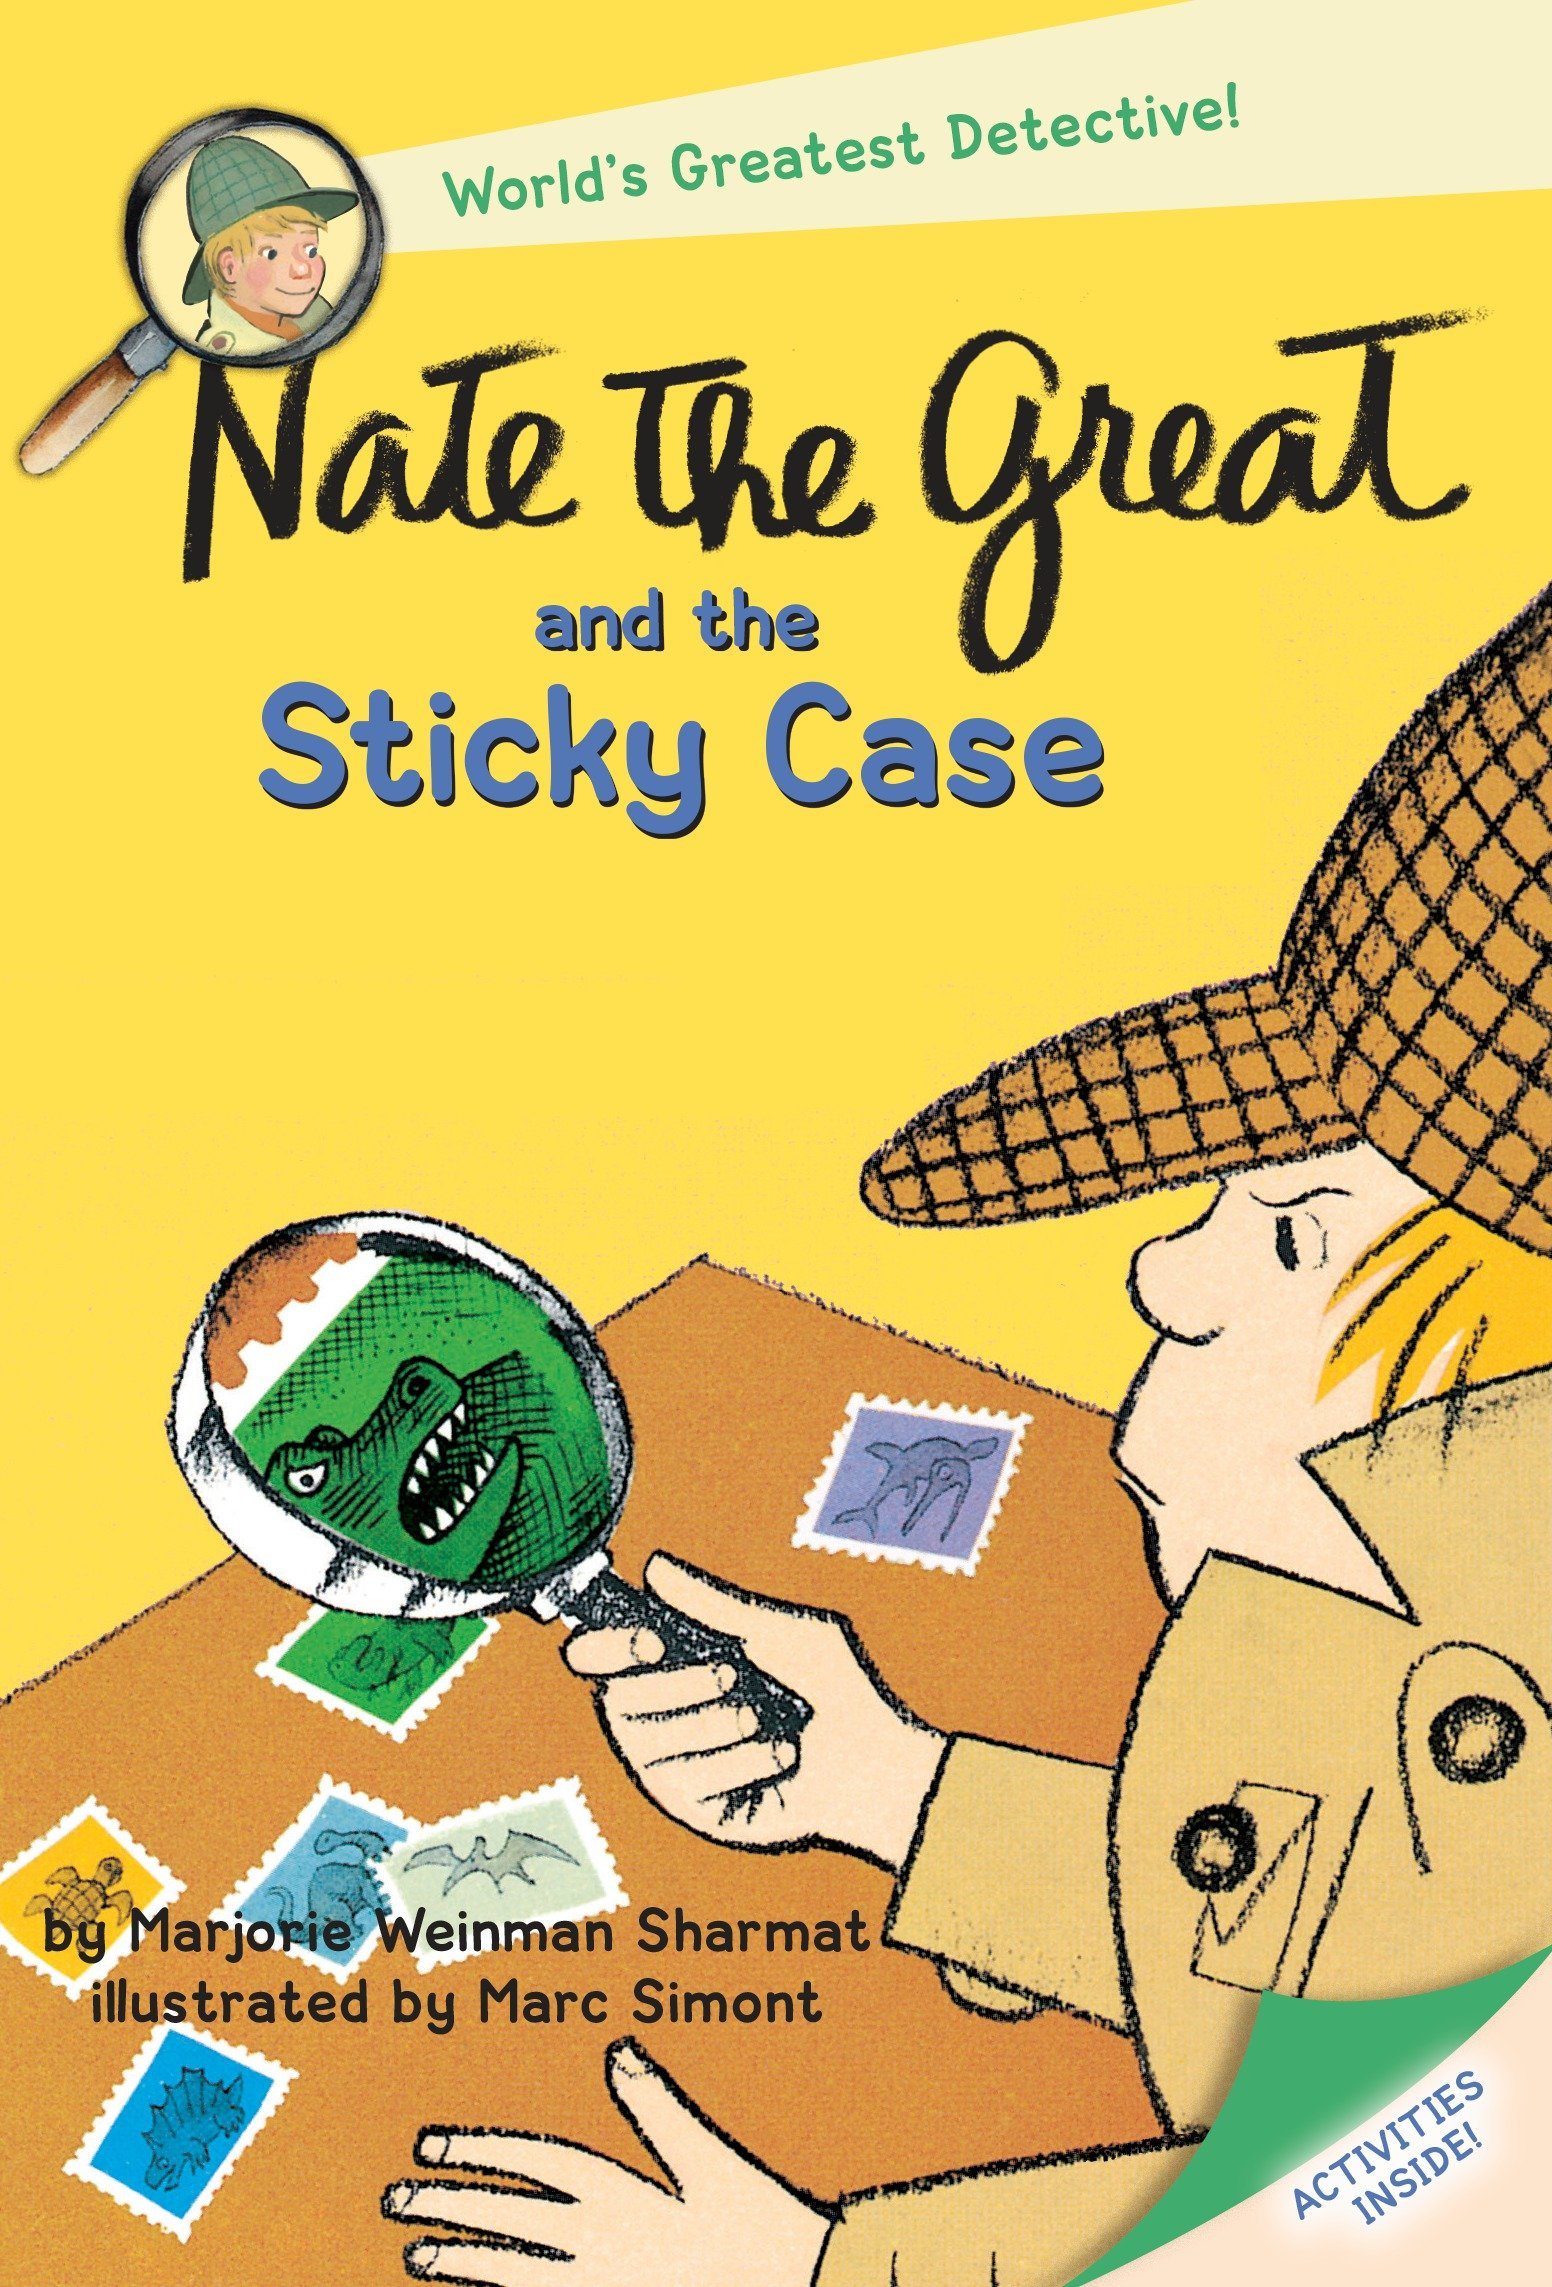 Nate the great and the sticky case cover image